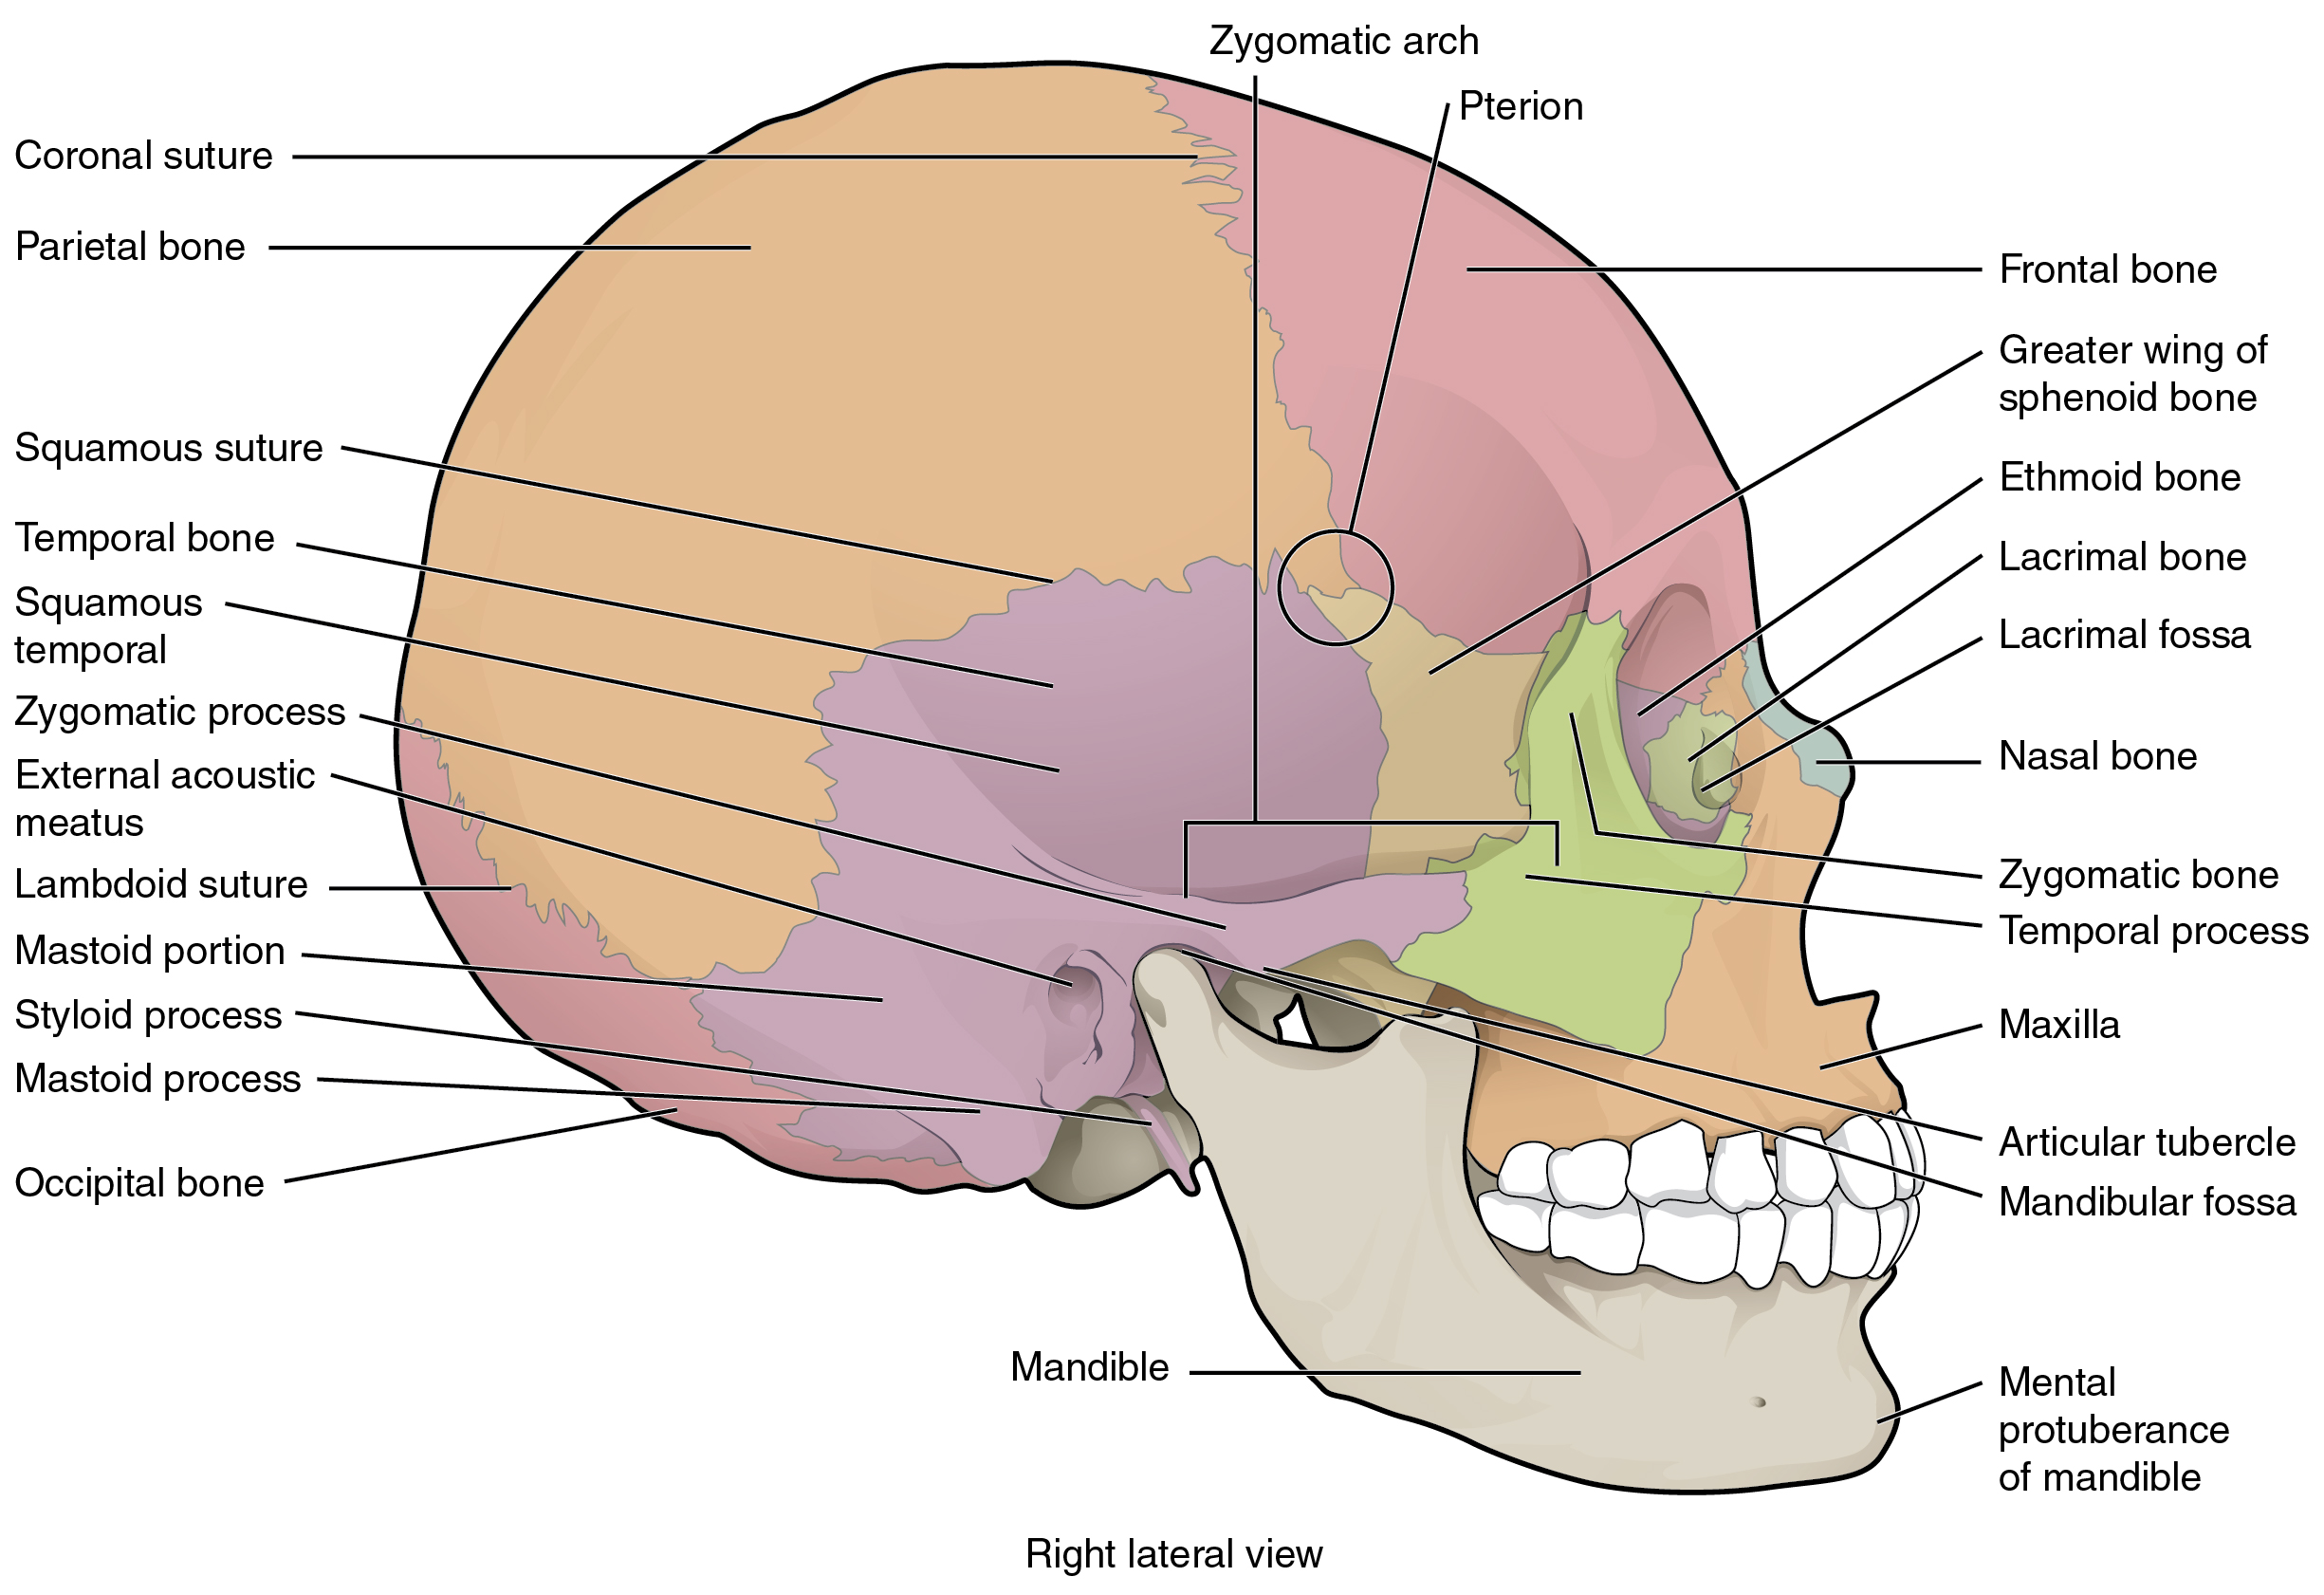 This image shows the lateral view of the human skull and identifies the major parts.